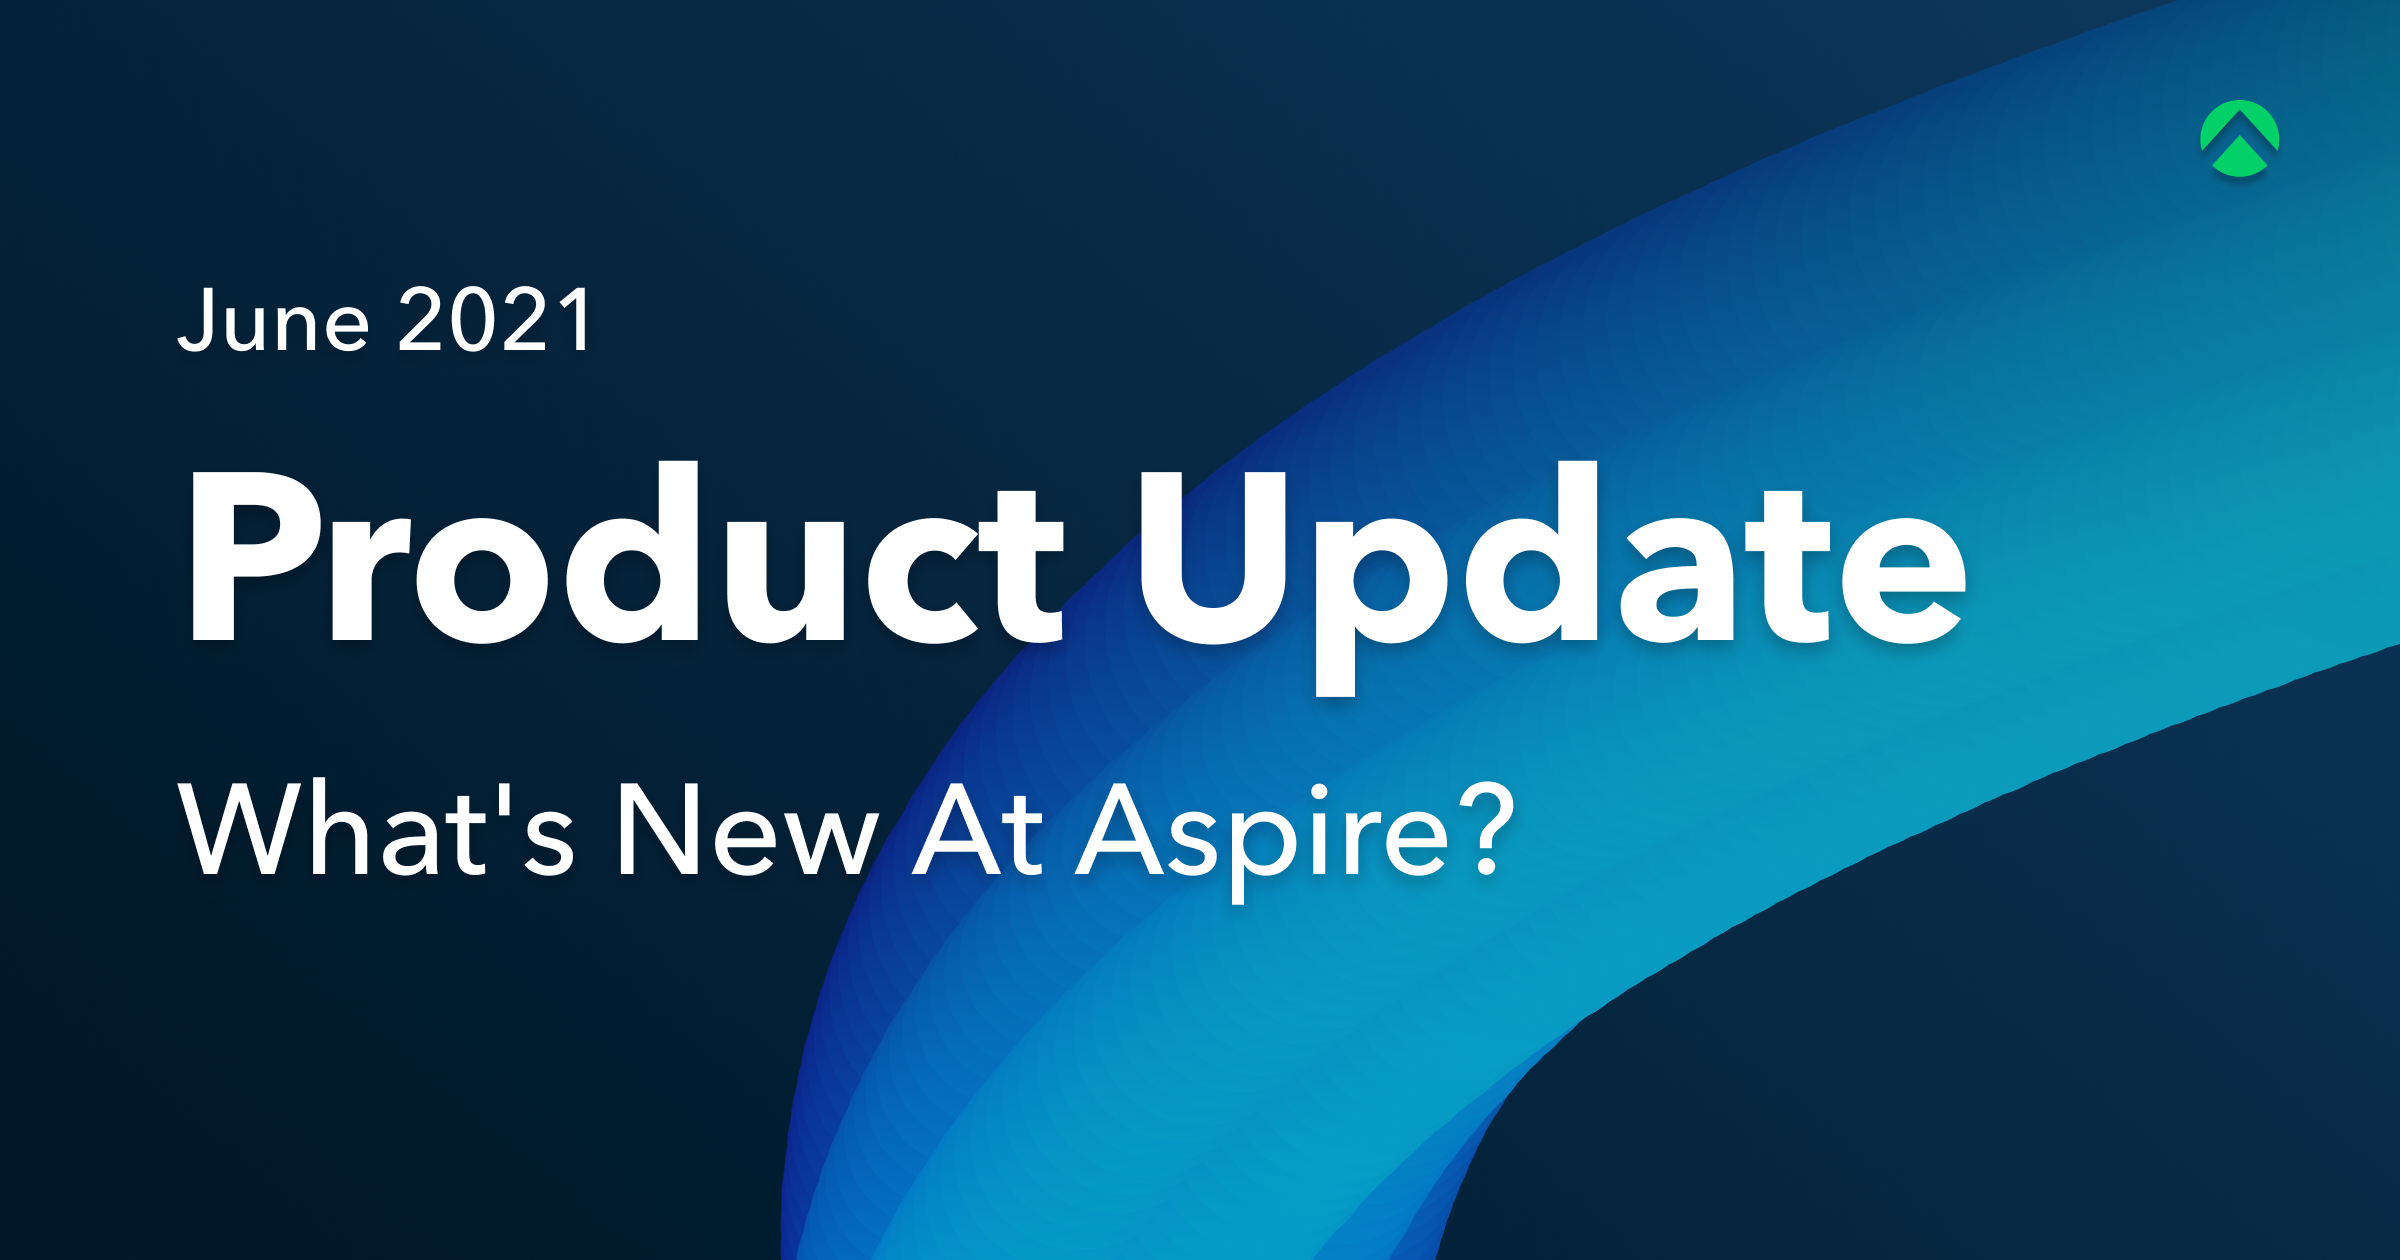 [June Edition] What's New At Aspire?